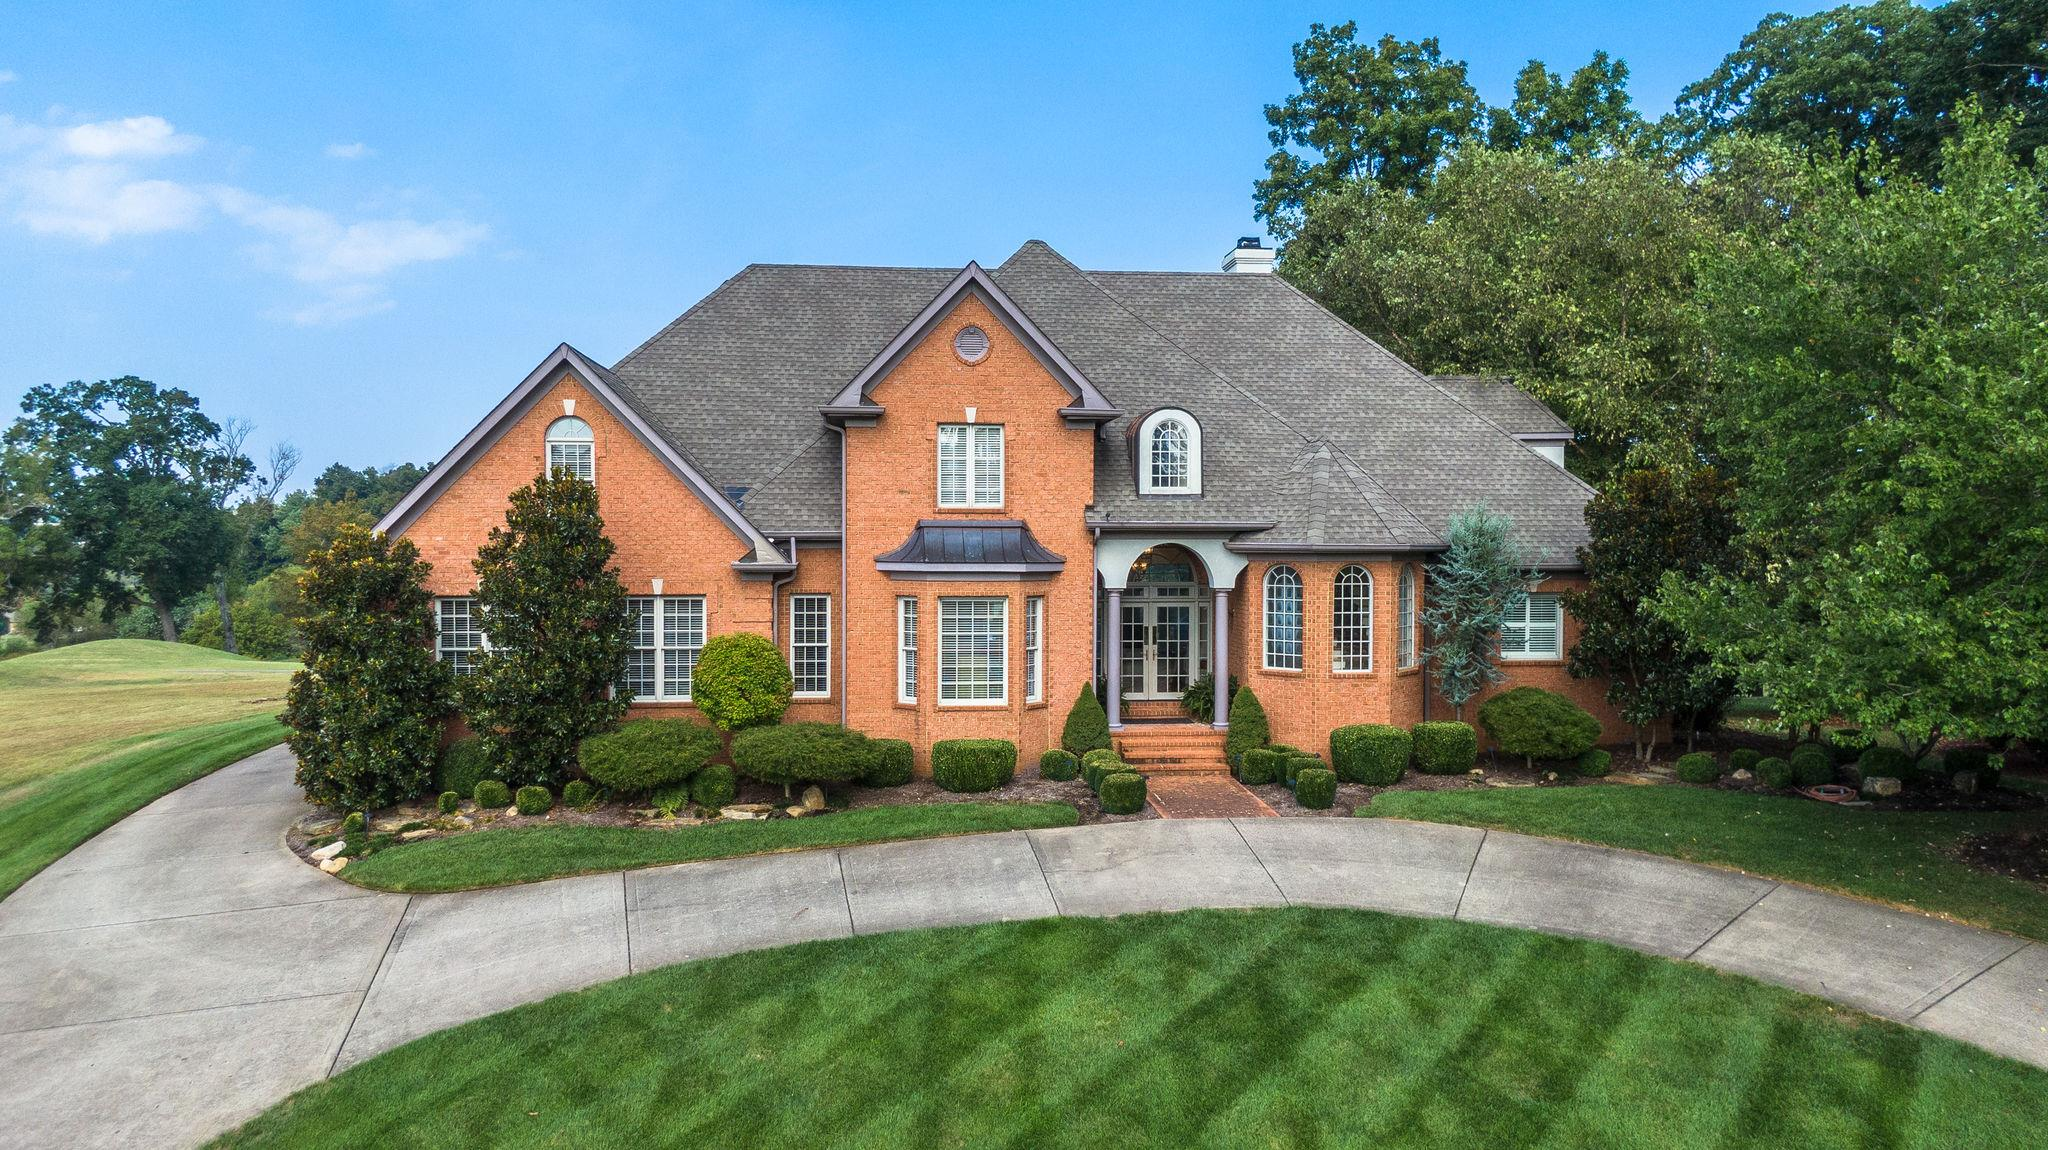 156 Eagle Pointe, Springfield, TN 37172 - Springfield, TN real estate listing